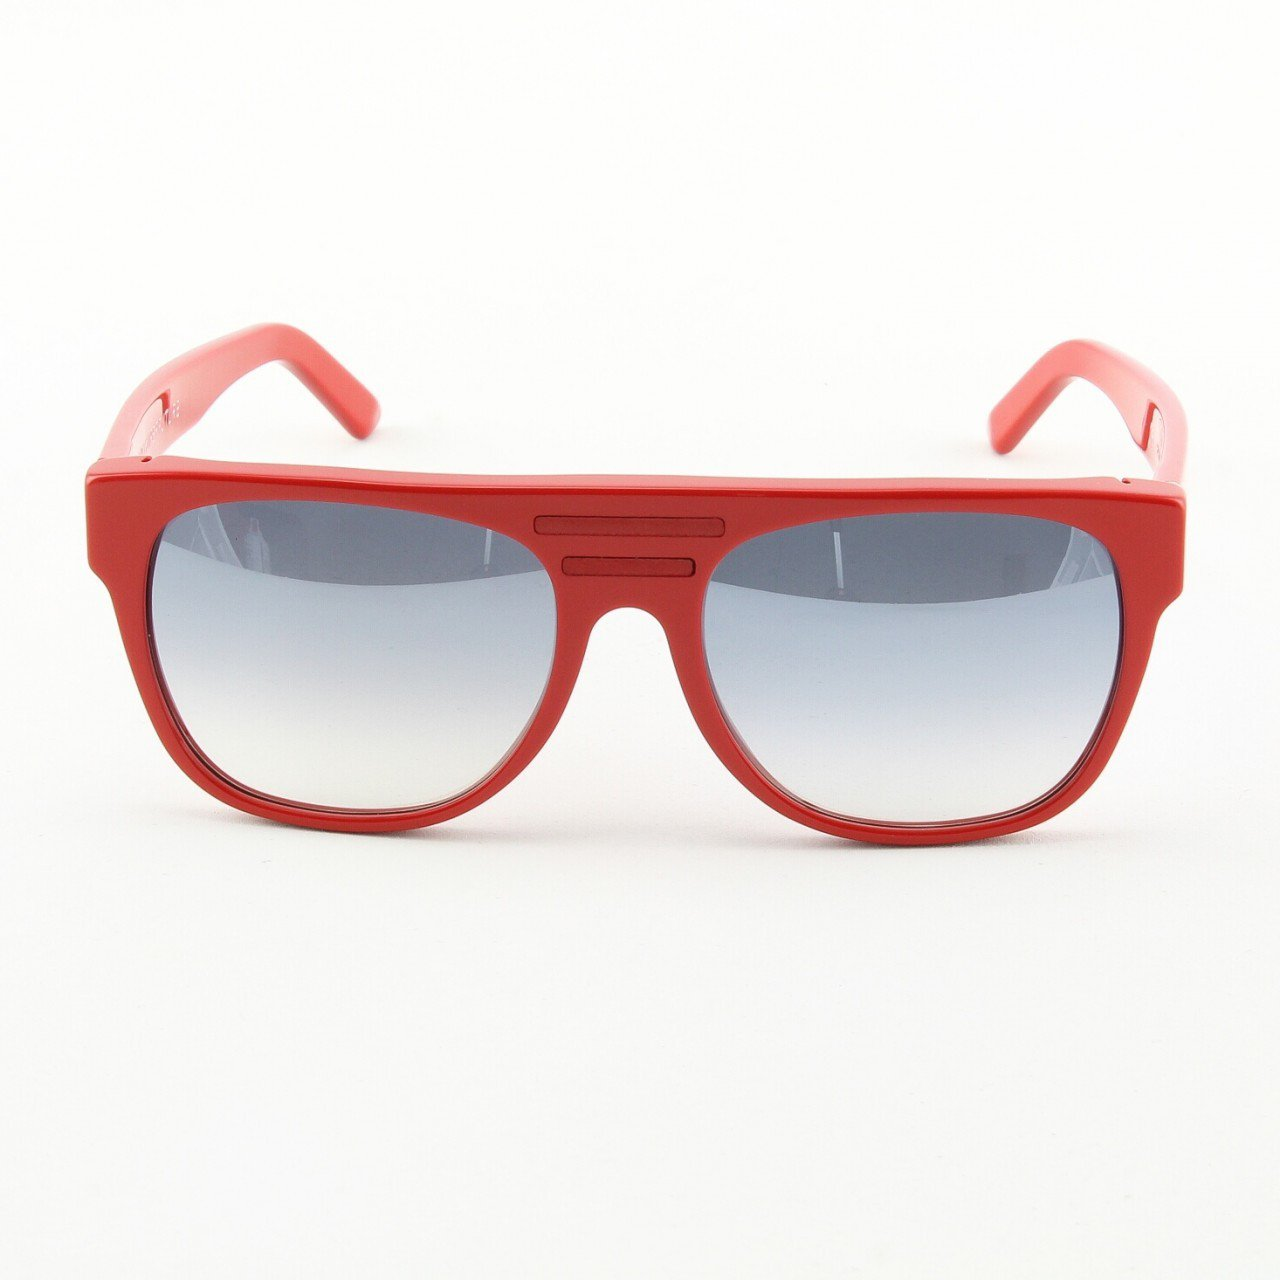 Super TopSki 230 Sunglasses Red with Red Detachable Leather Sides by RETROSUPERFUTURE